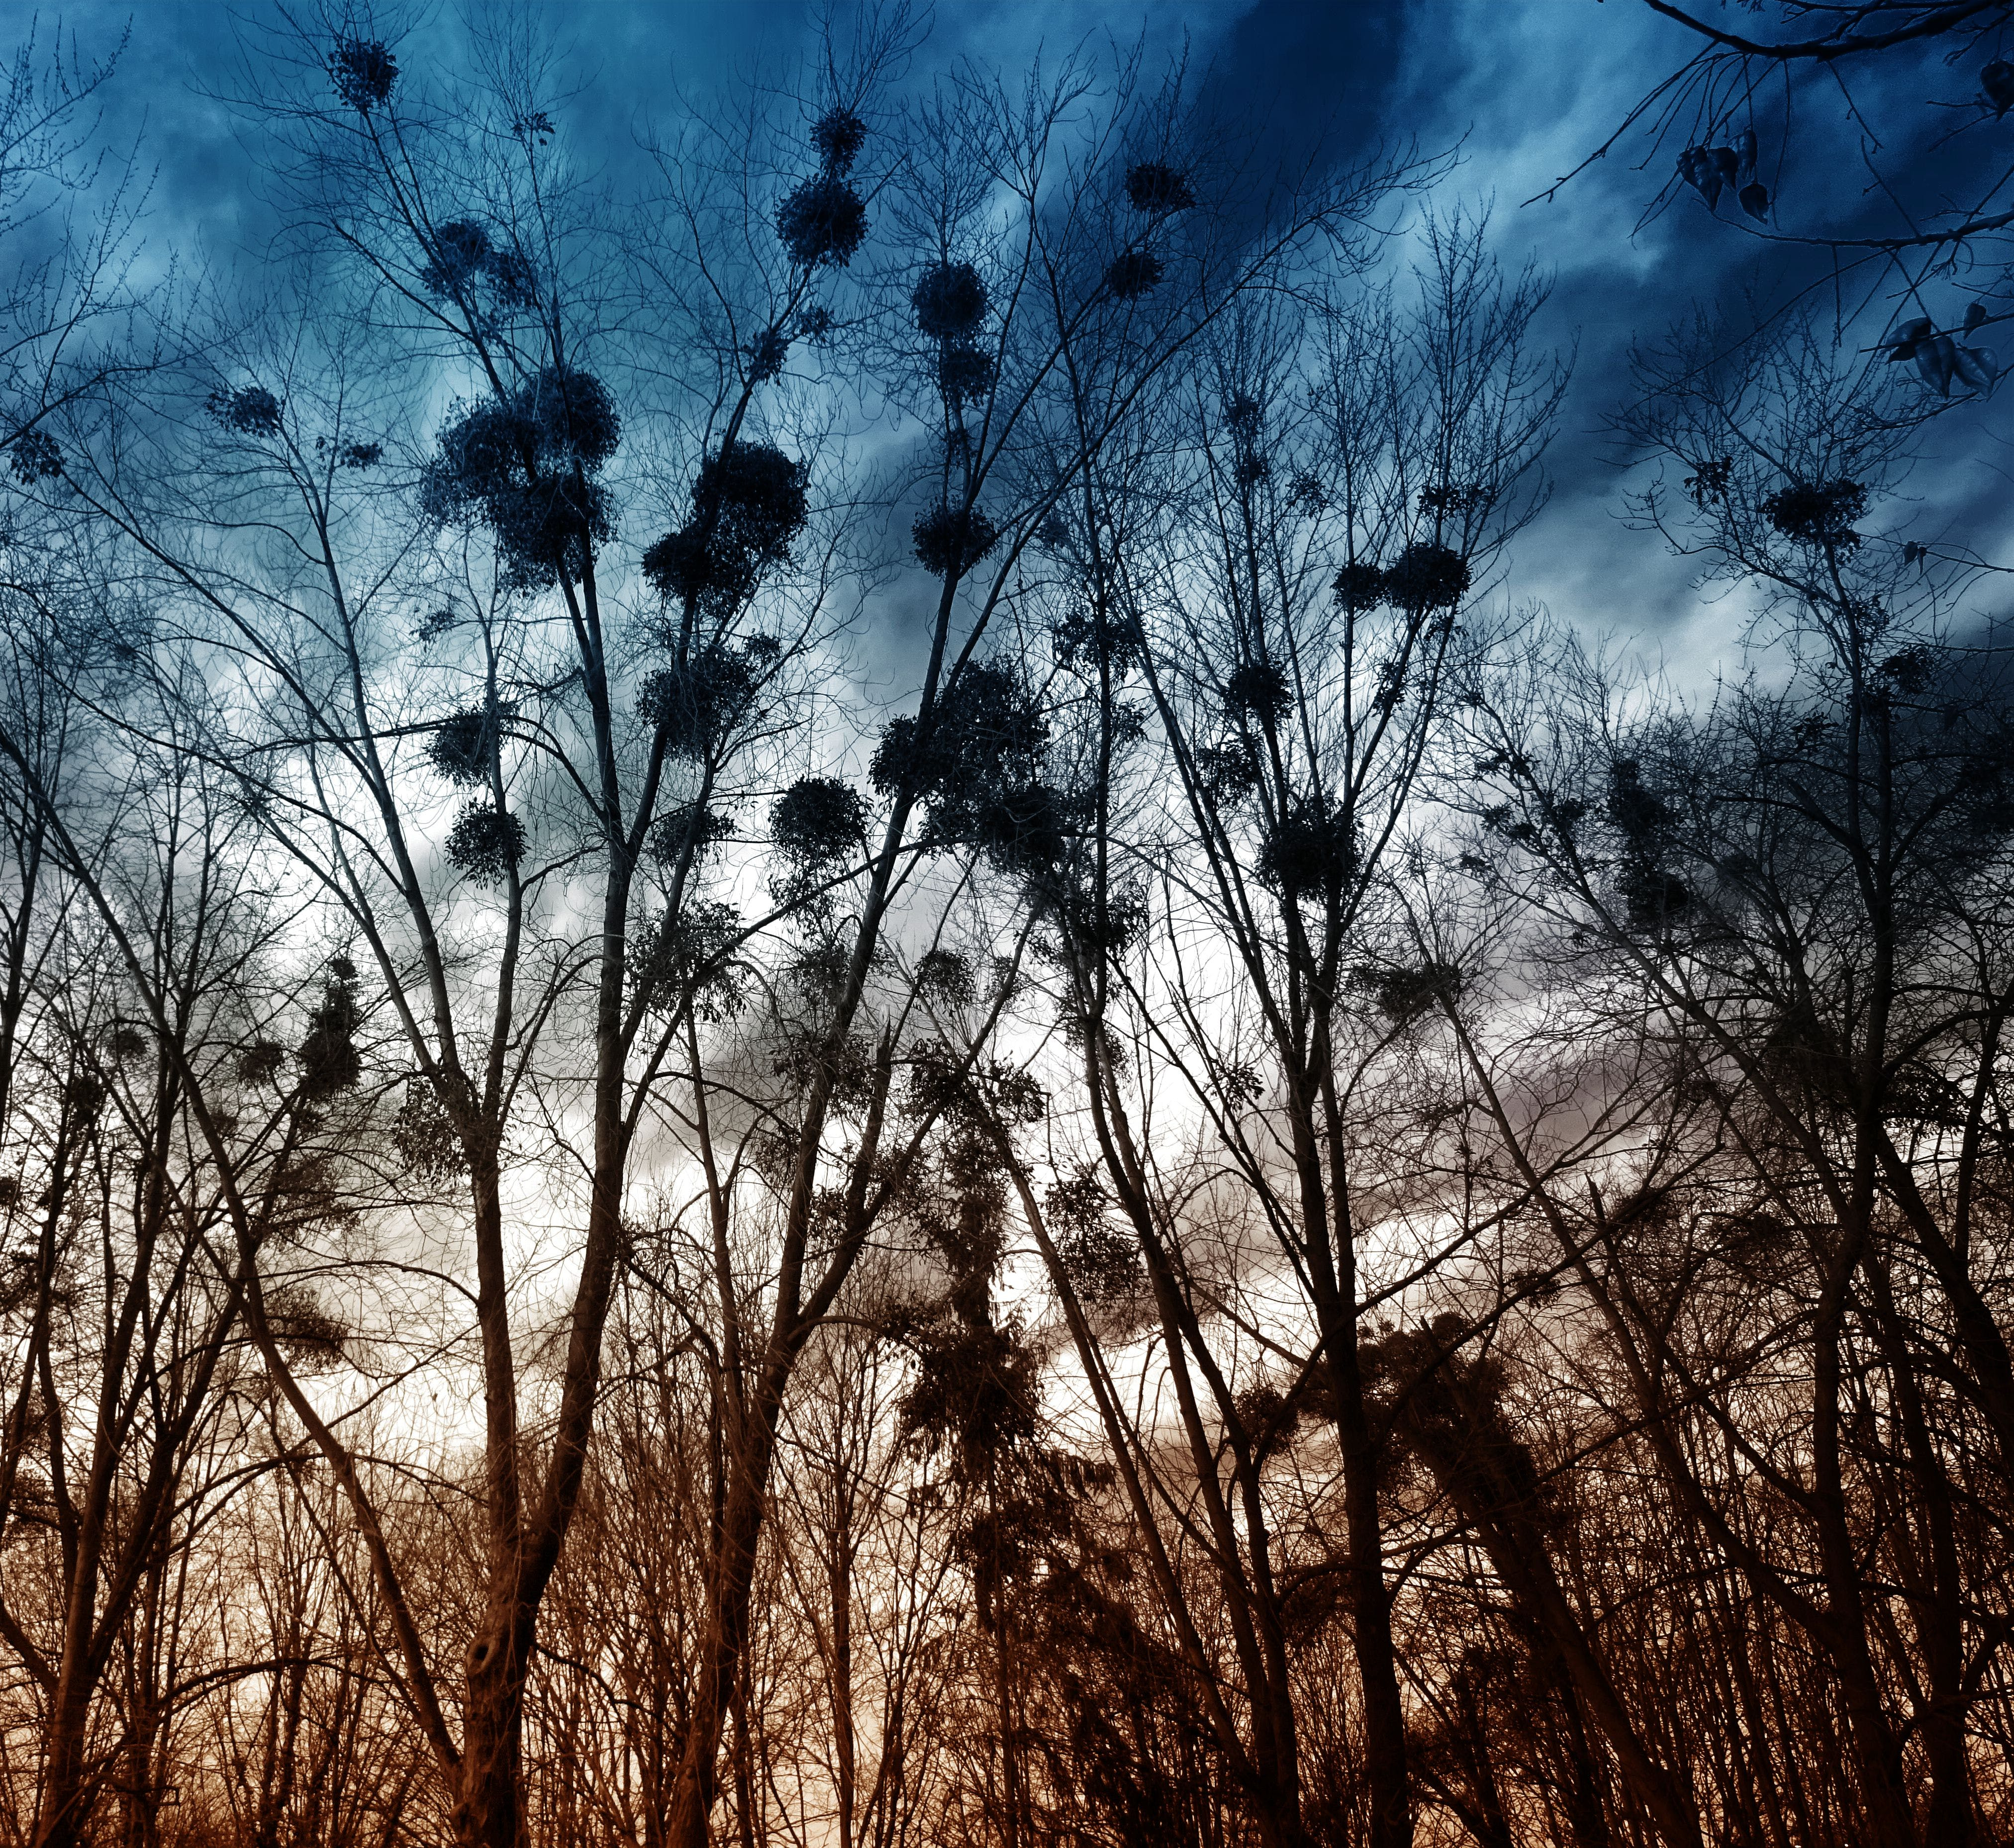 Silhouette of Trees Without Leaves